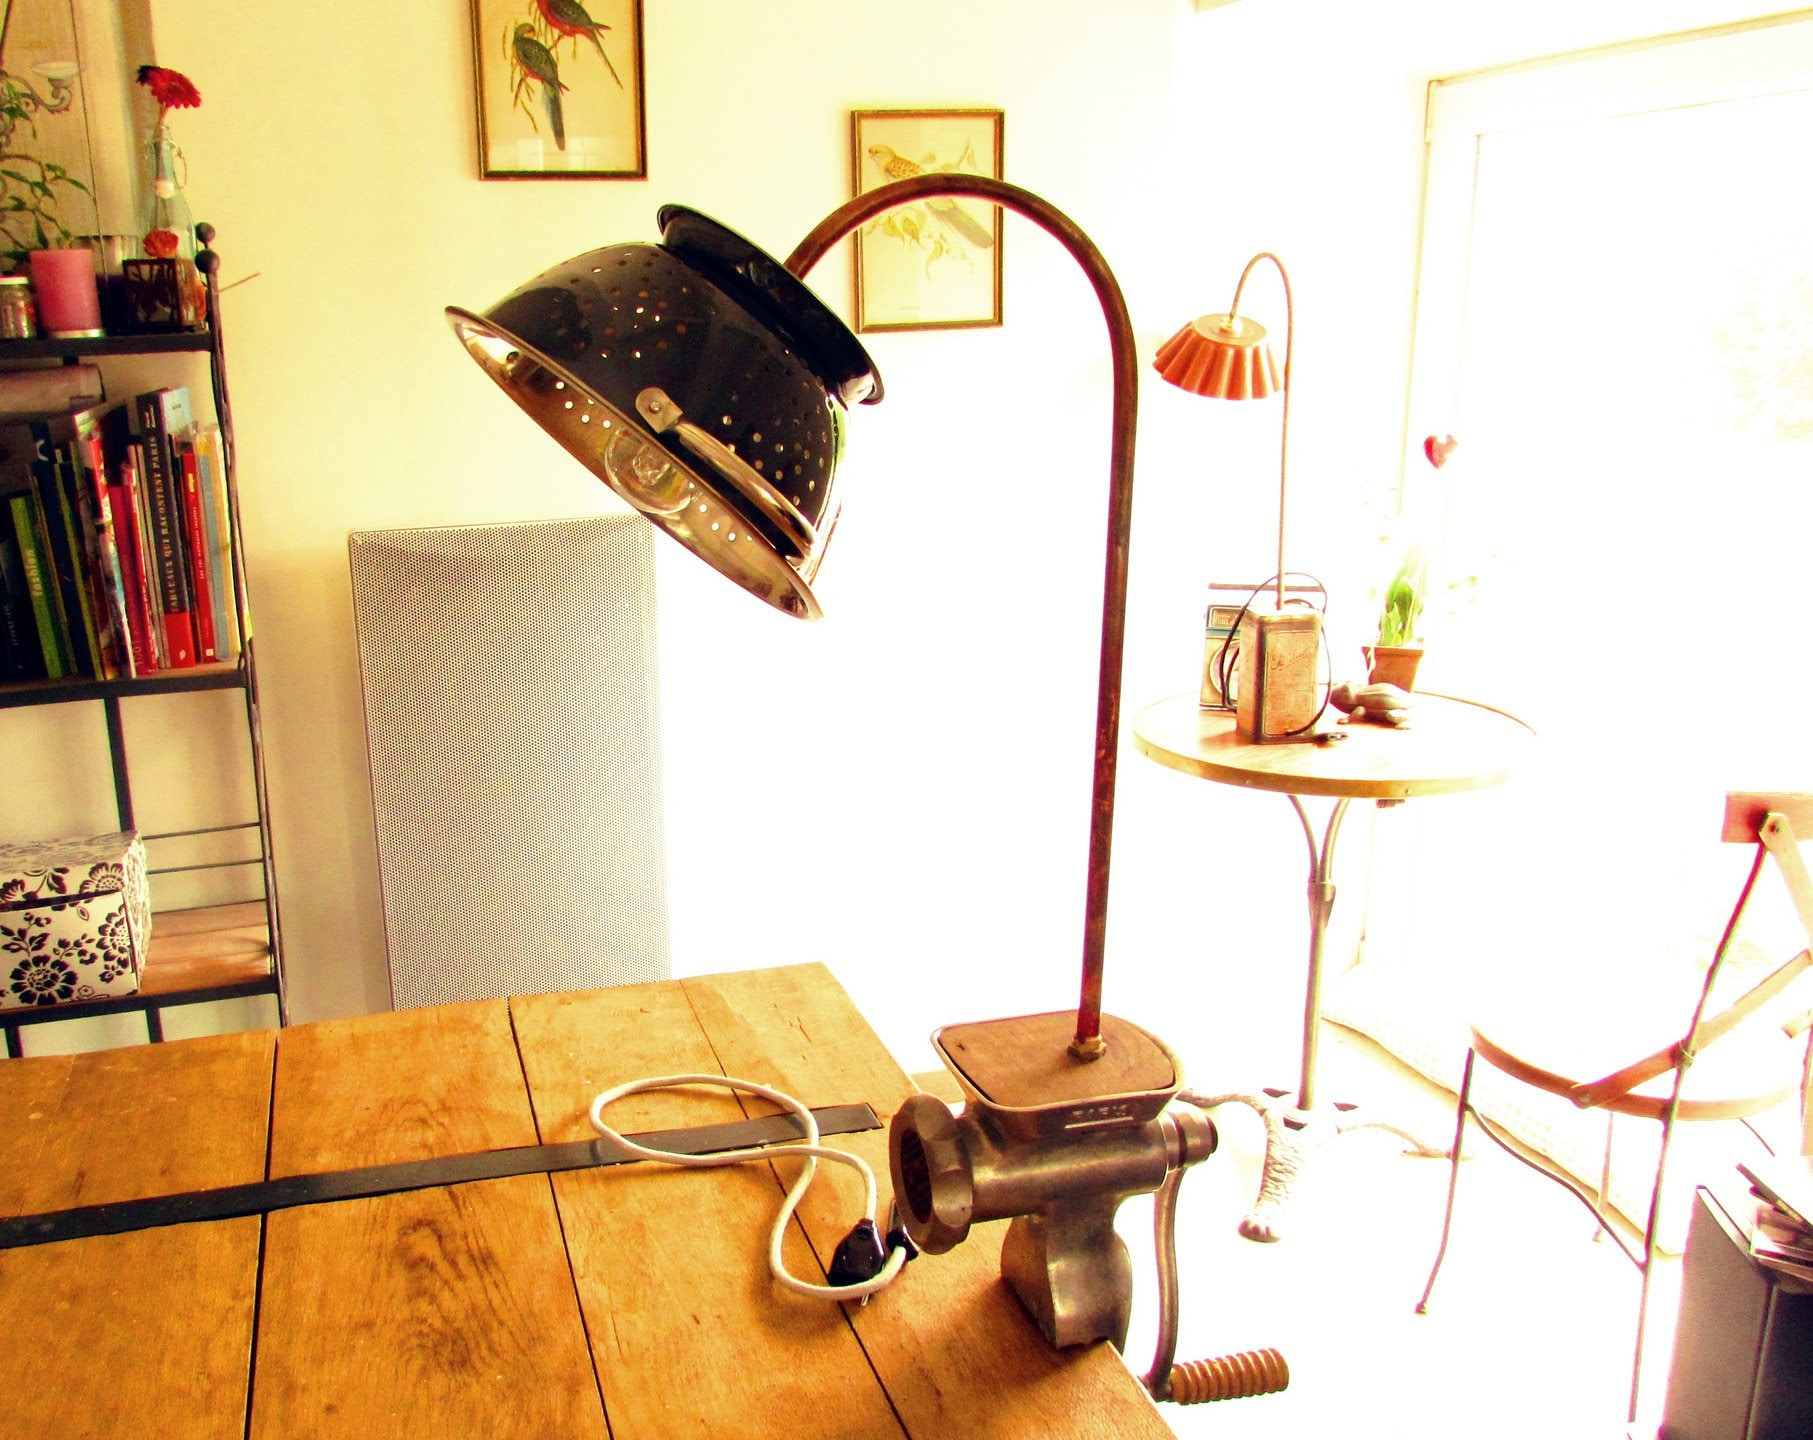 lampe vintage poser fixer avec accroche serre joint objet. Black Bedroom Furniture Sets. Home Design Ideas